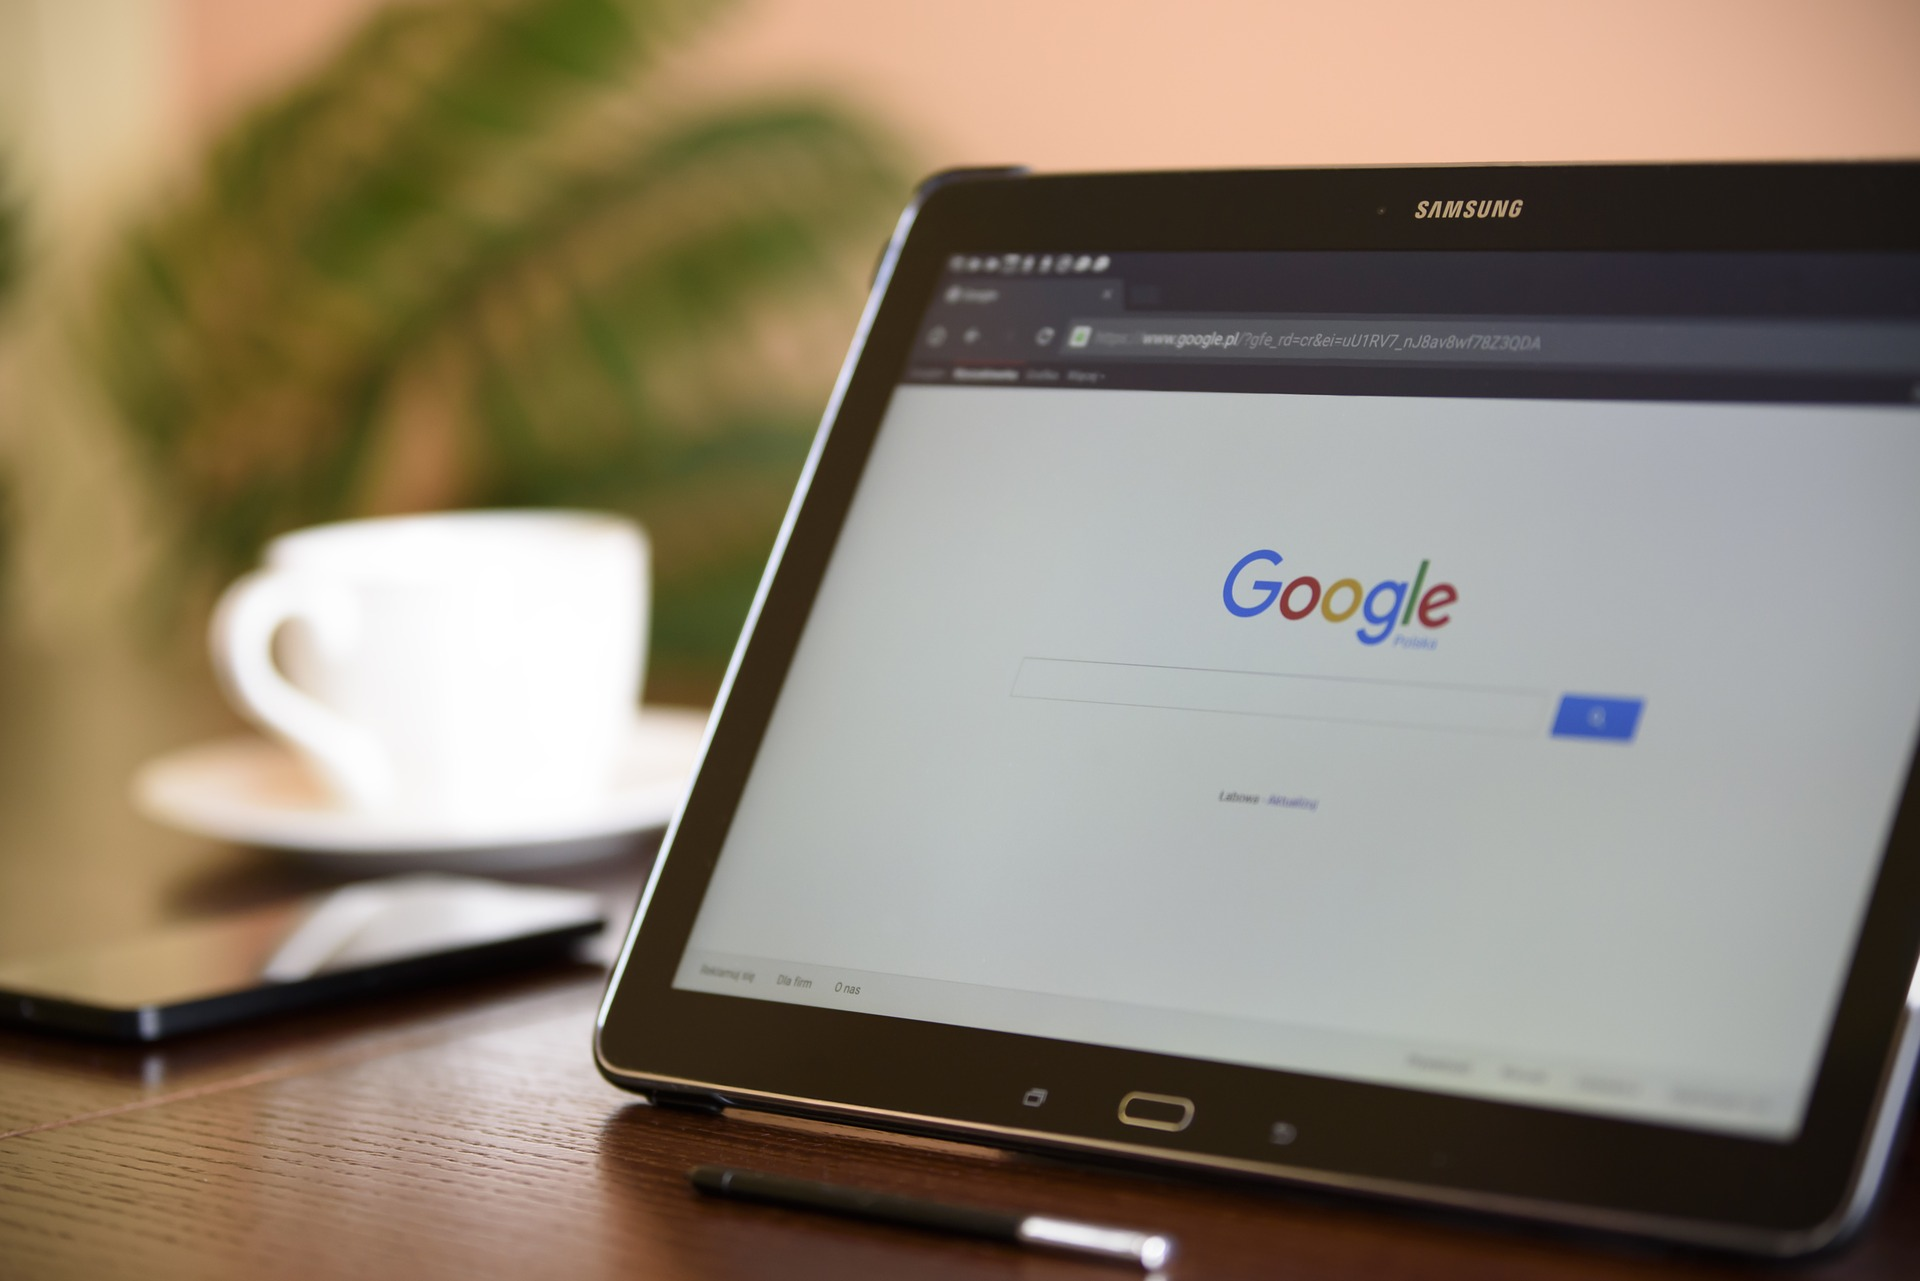 Google Search on Samsung Tablet